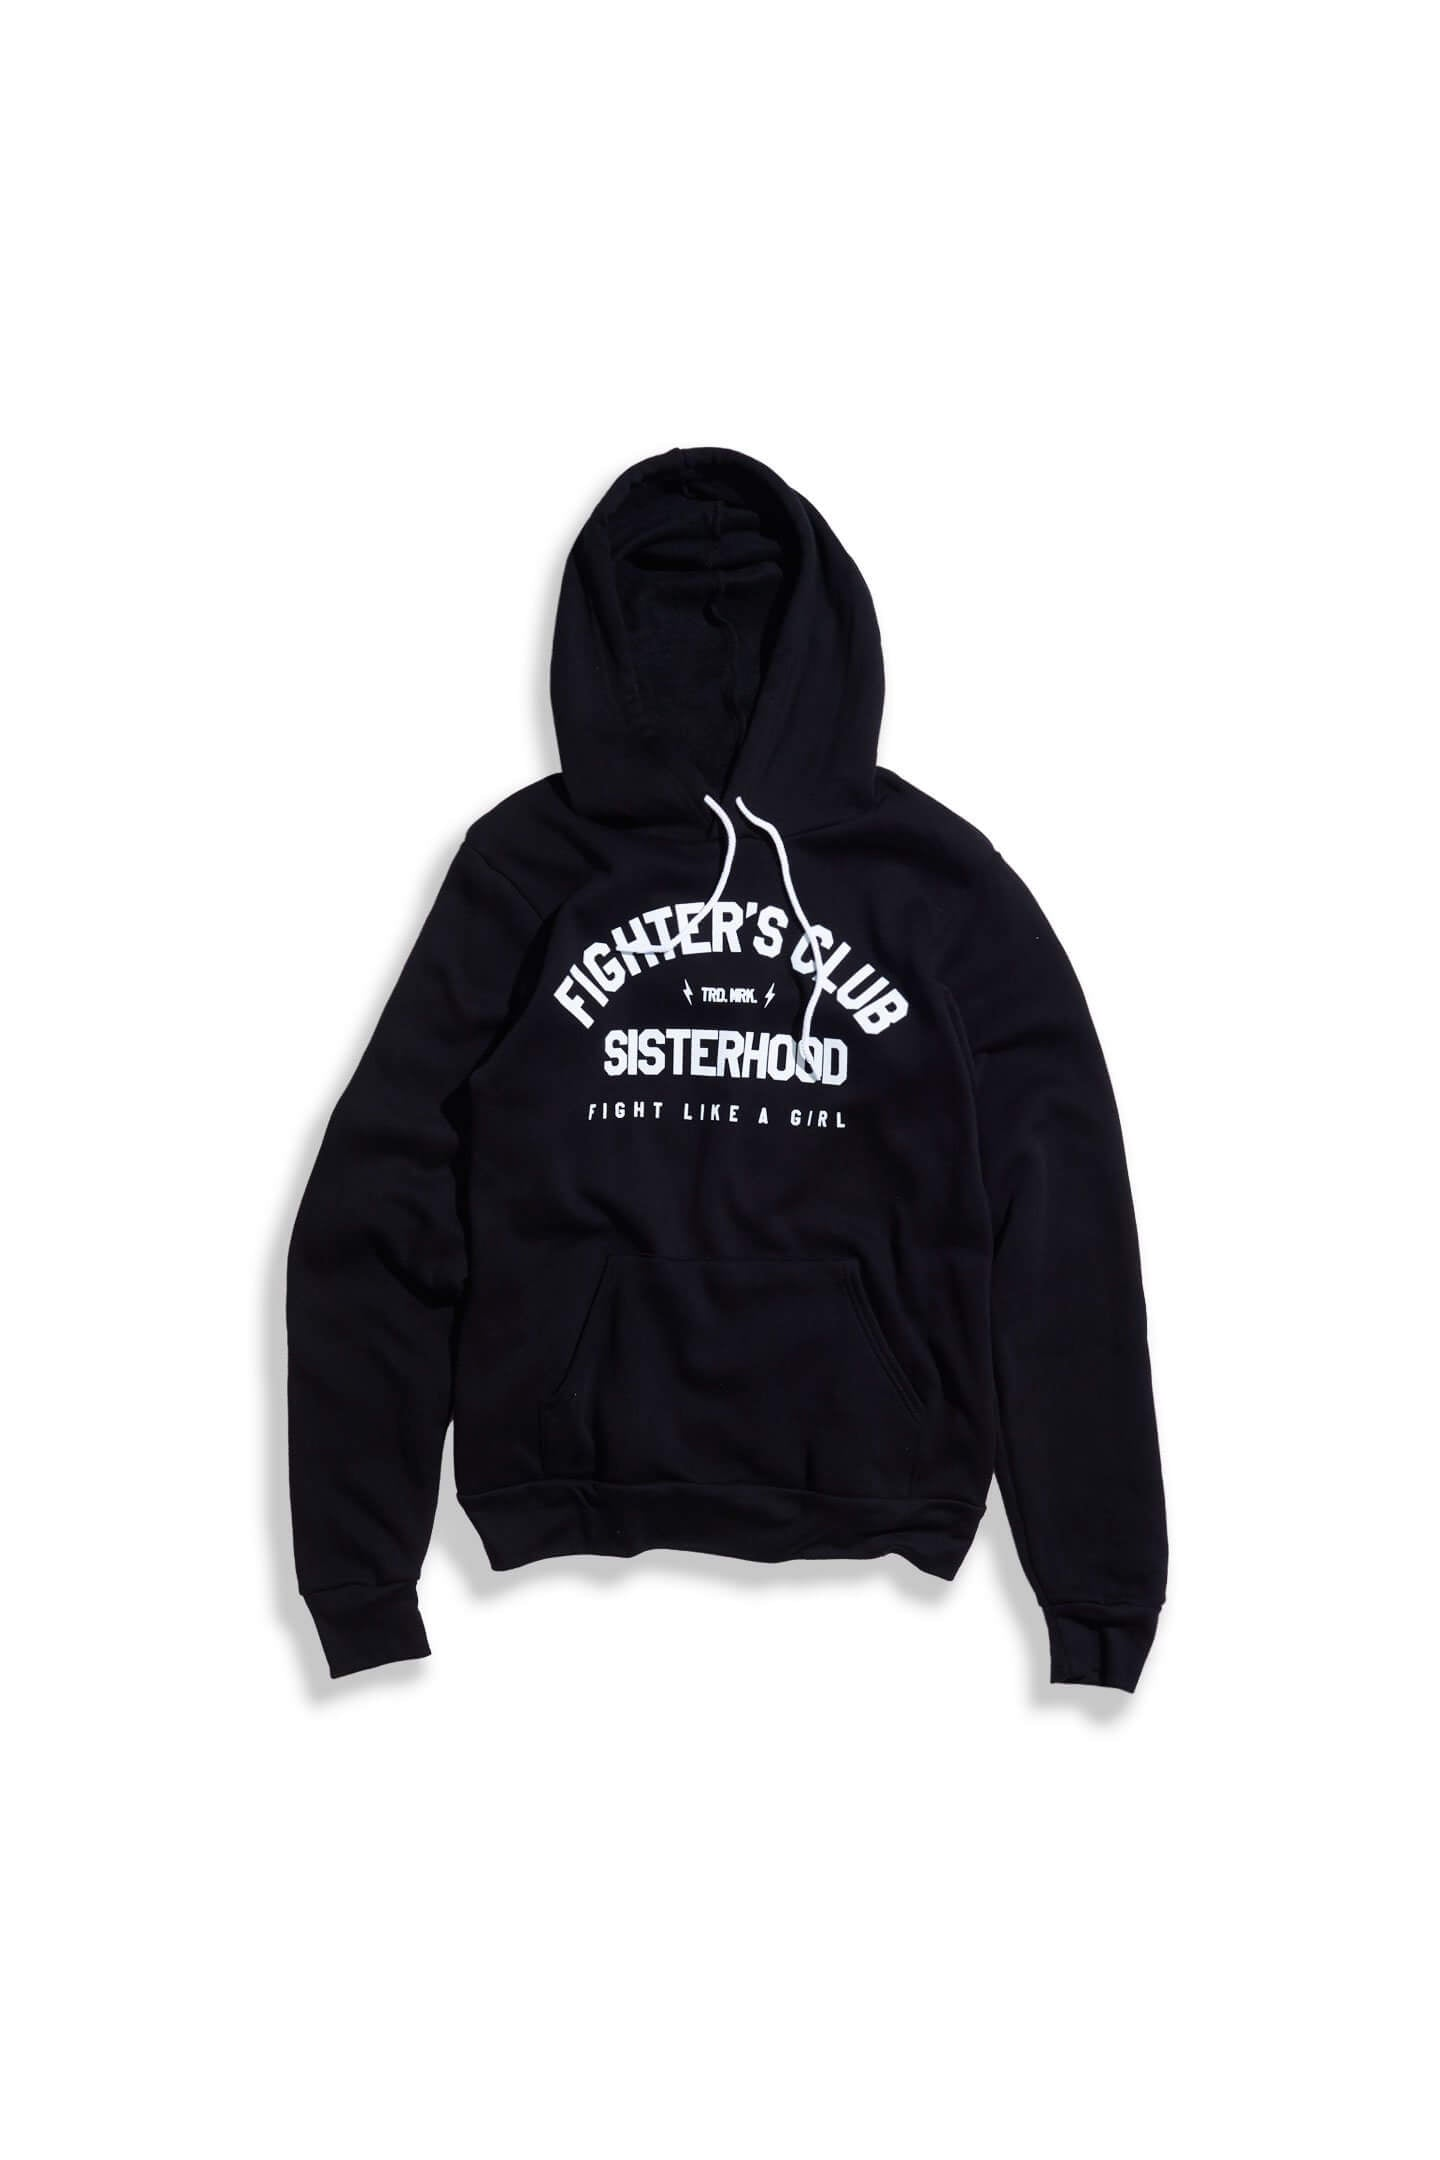 FULL LENGTH SISTERHOOD HOODIE - BLACK